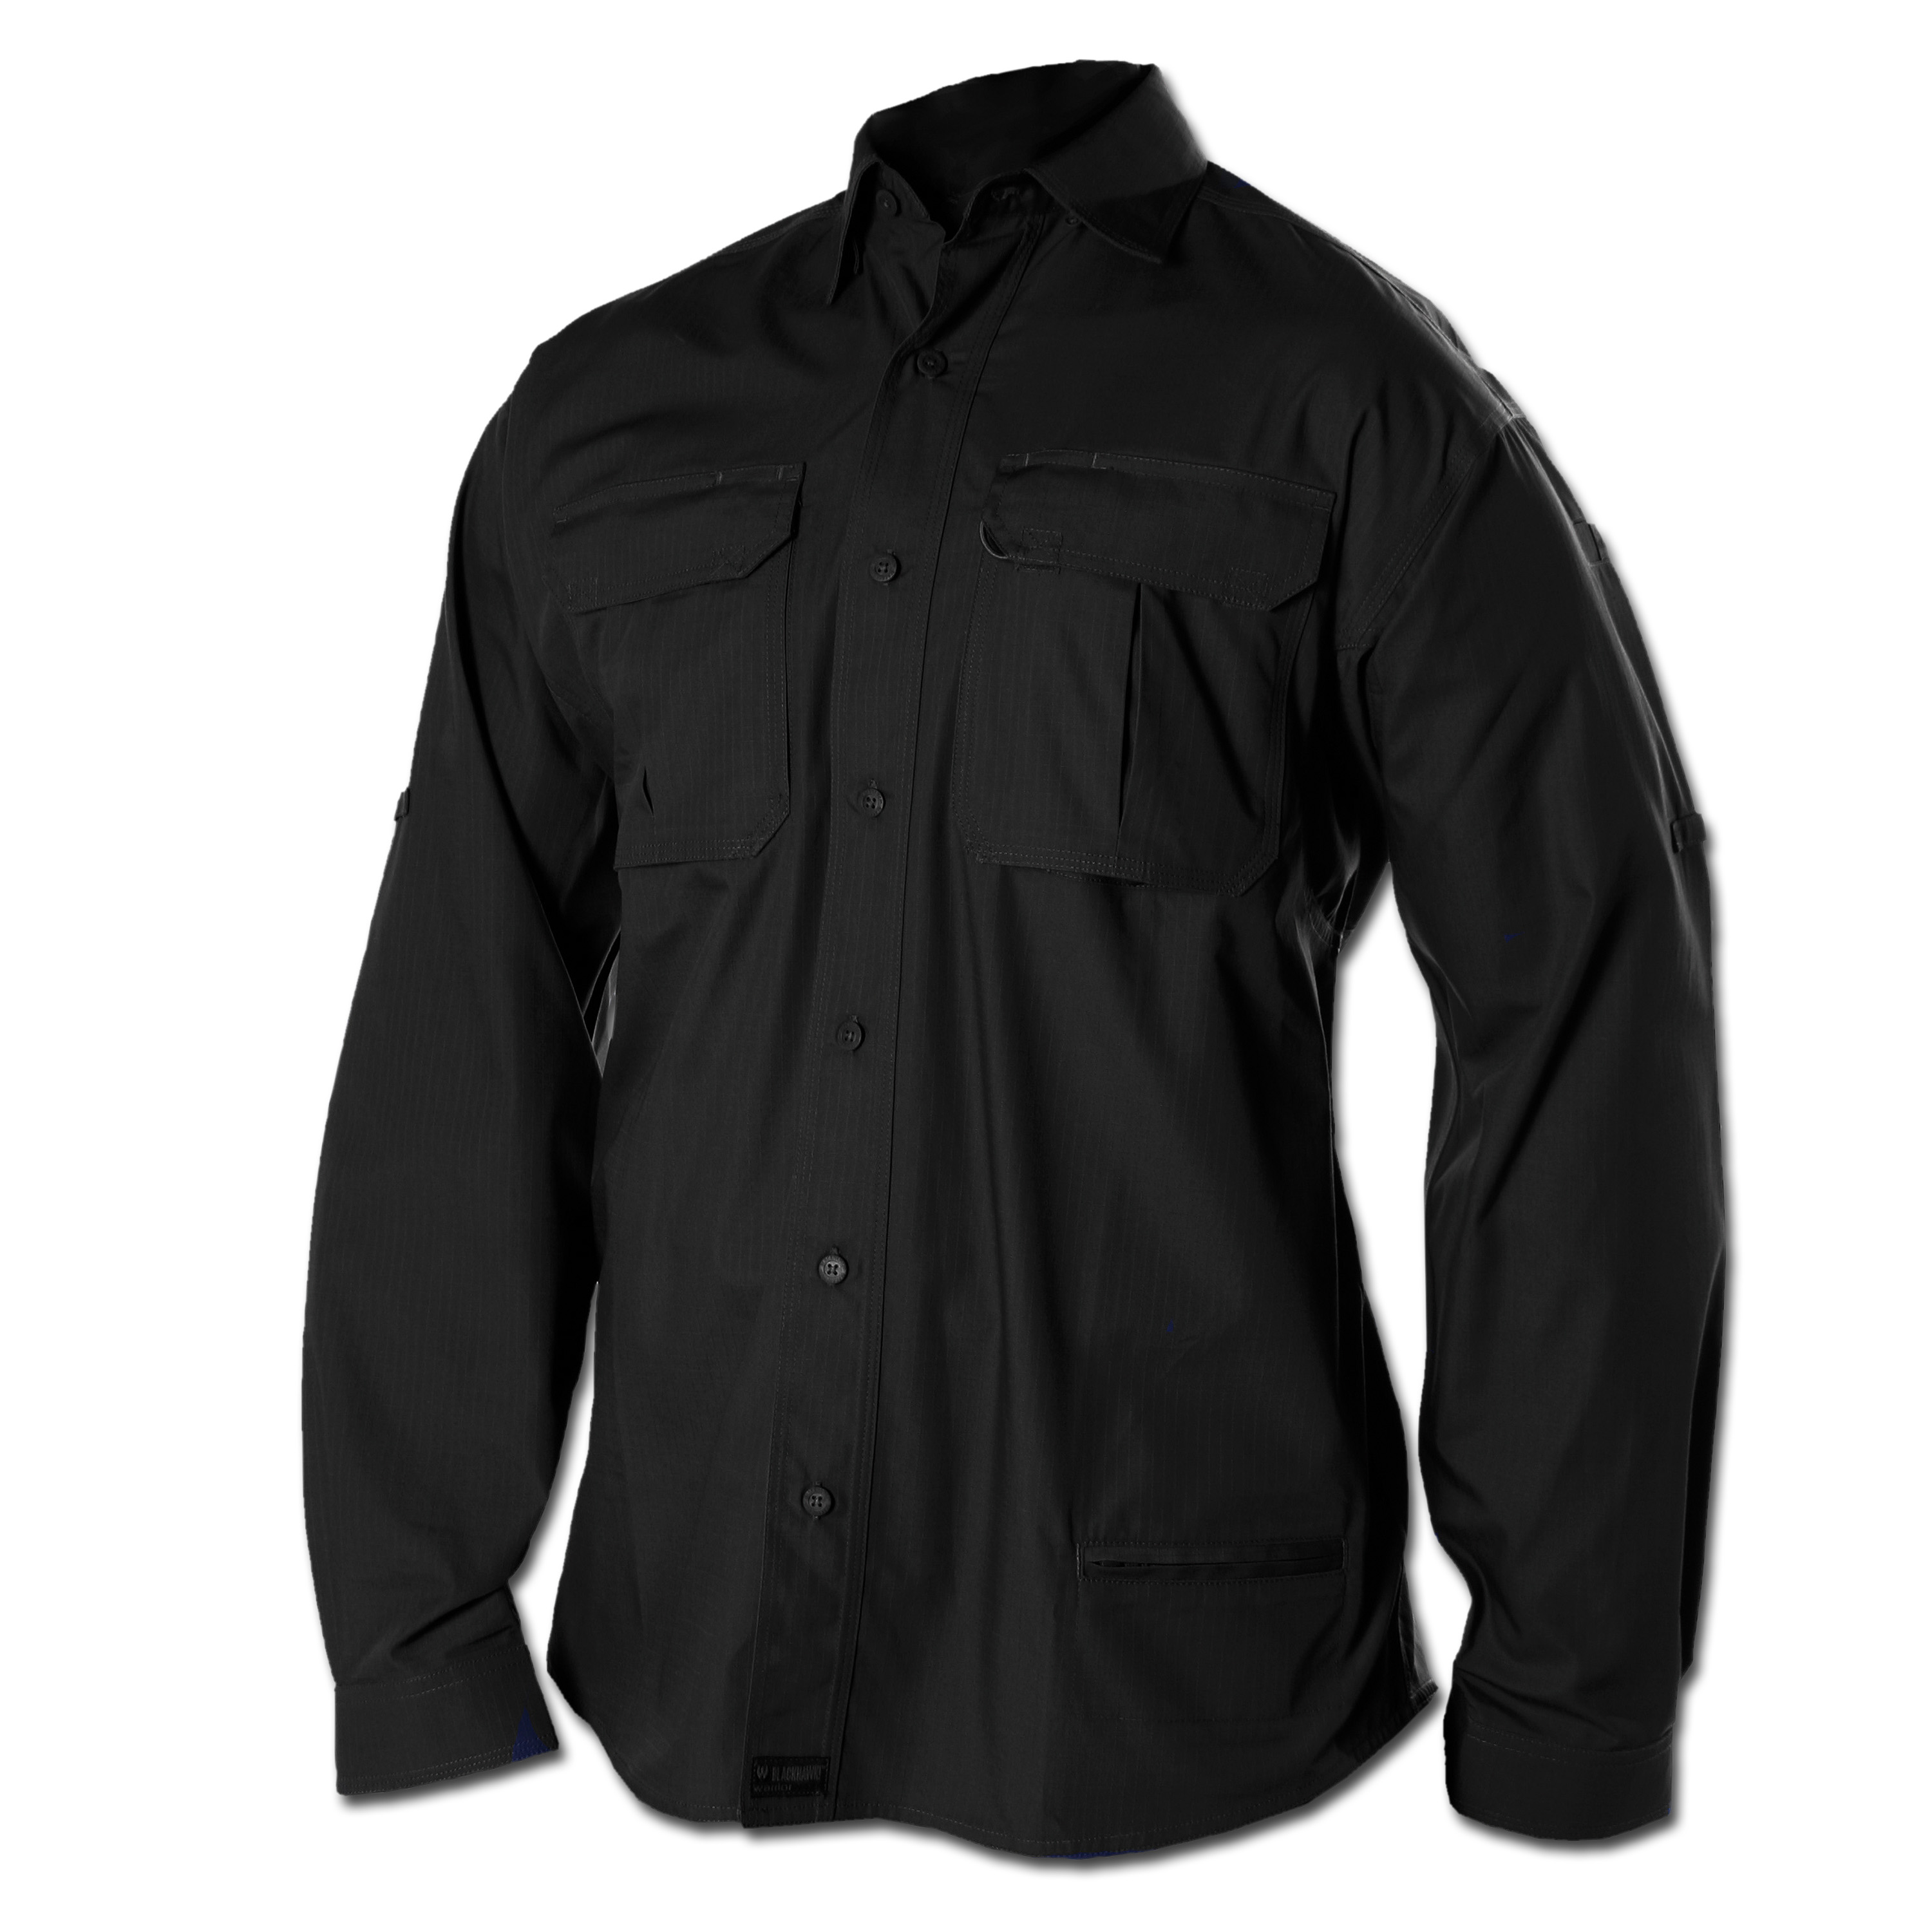 Blackhawk Performance Cotton Tactical Shirt Long Sleeve schwarz